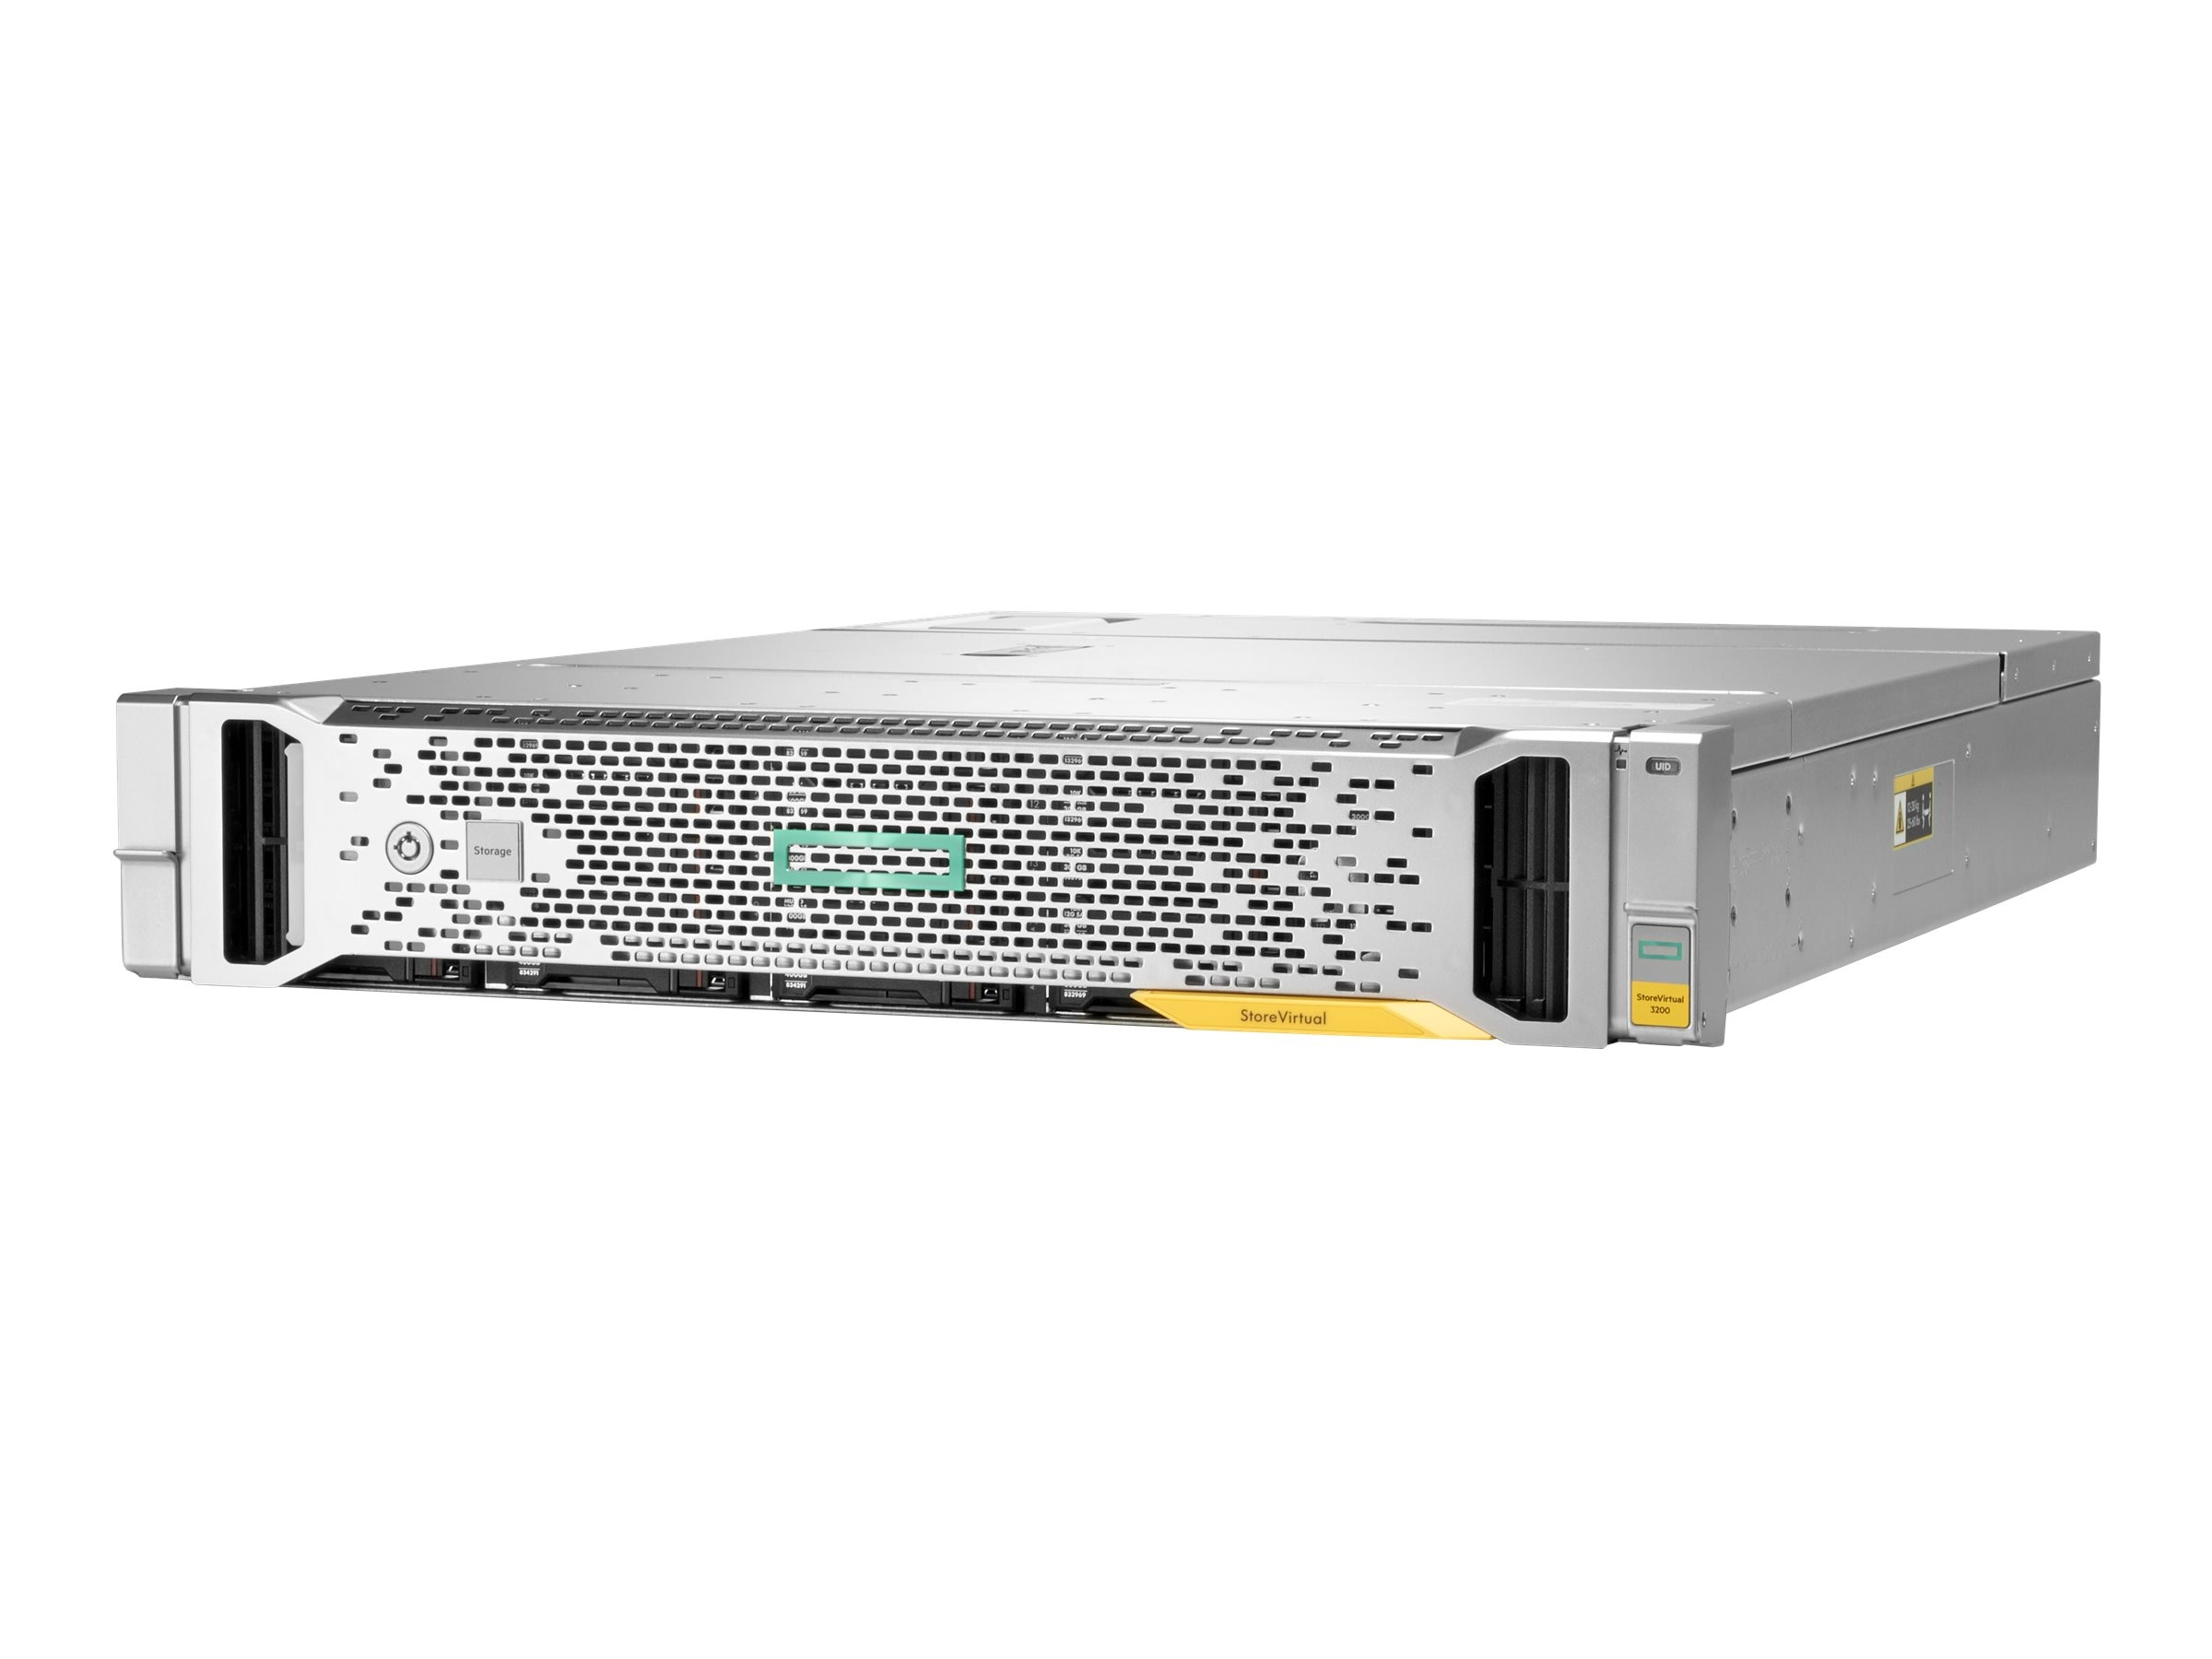 Hewlett Packard Enterprise N9X16A Image 1